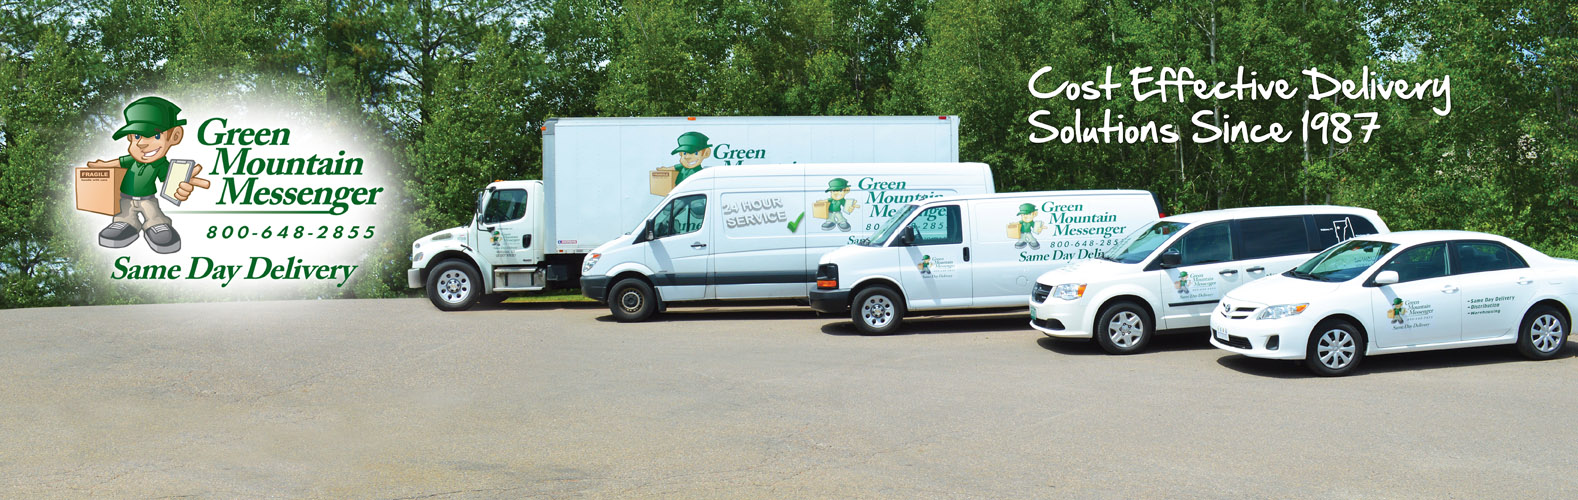 Home Delivery Courier In Vermont And New Hampshire U2014 Green Mountain  Messenger